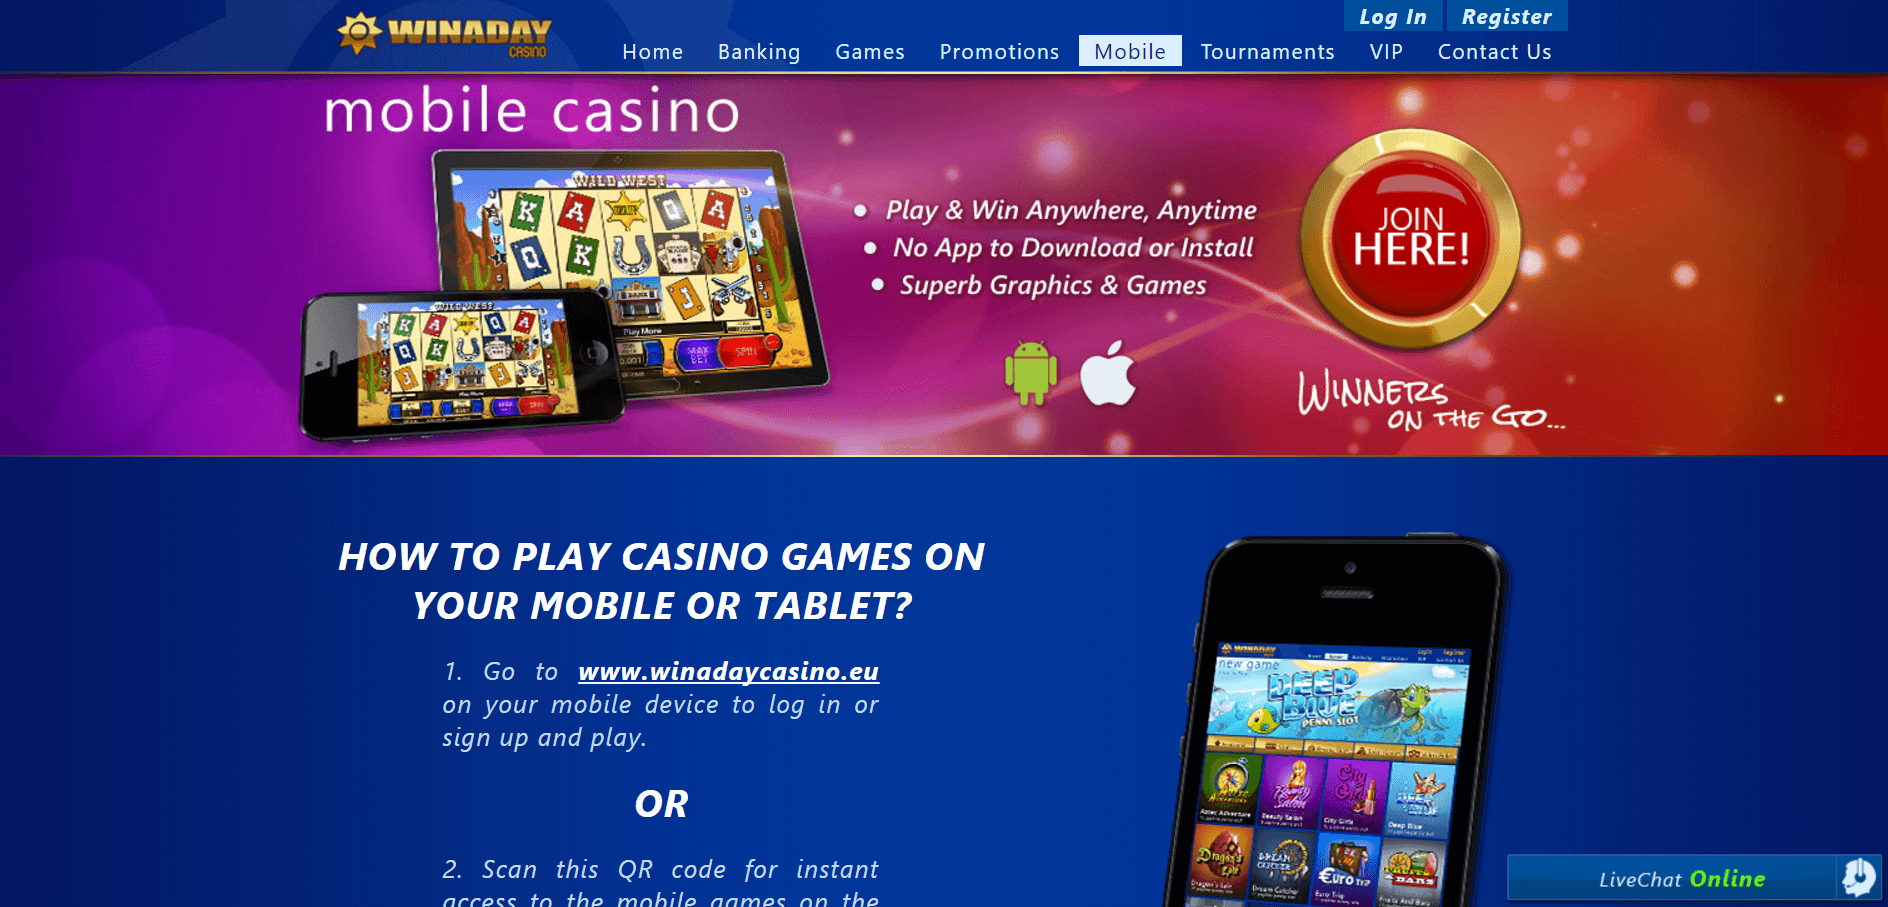 An image of the Winaday Casino Website mobile page